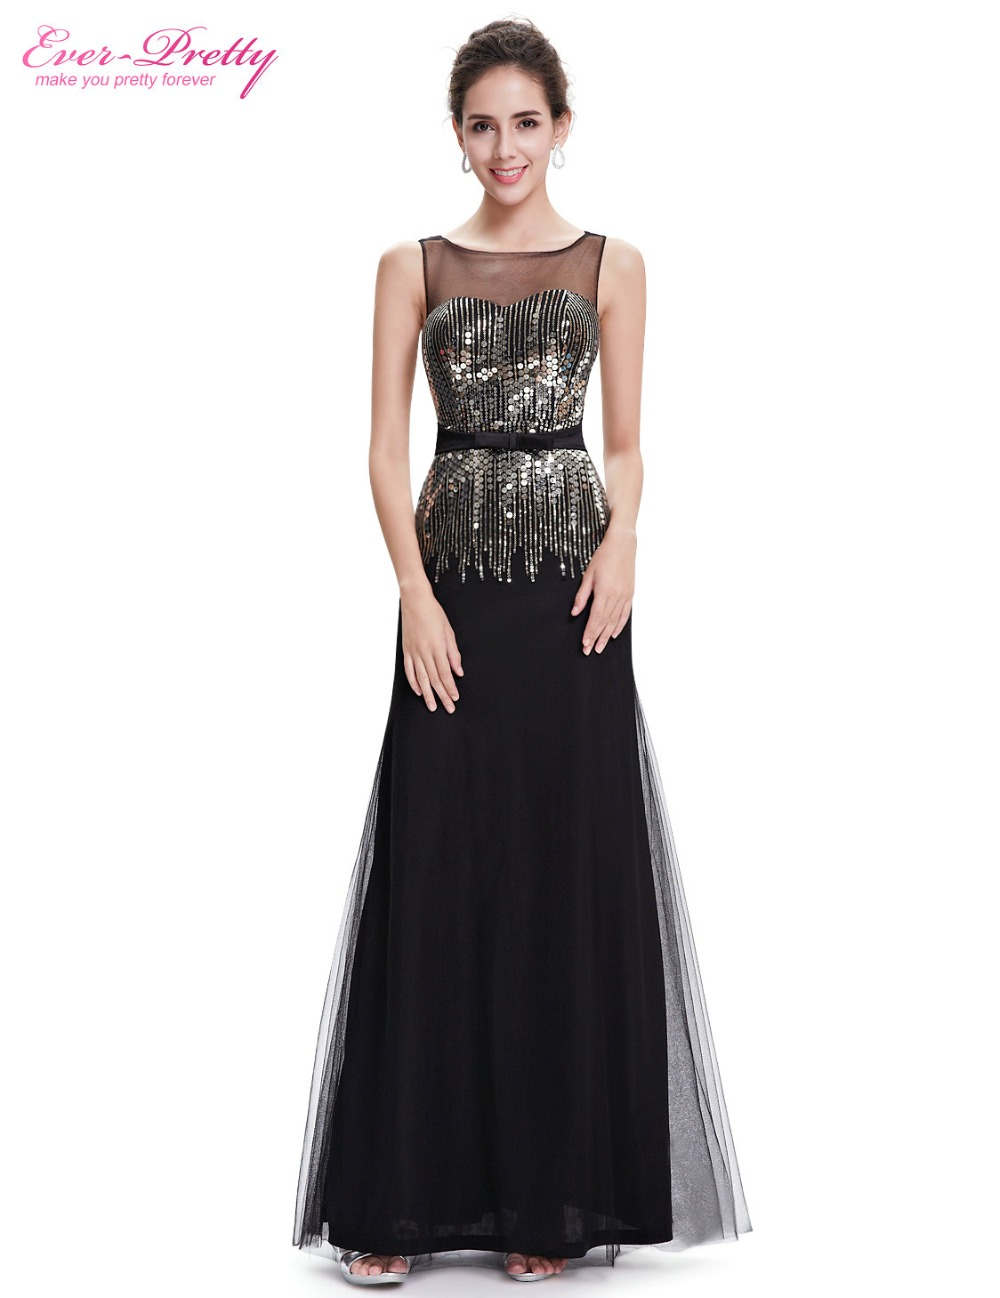 [Clearance Sale] Sexy Evening Dresses Ever Pretty HE08602 Black A Line Sequins Dresses Women 2017 Backless Sparkle Dresses New